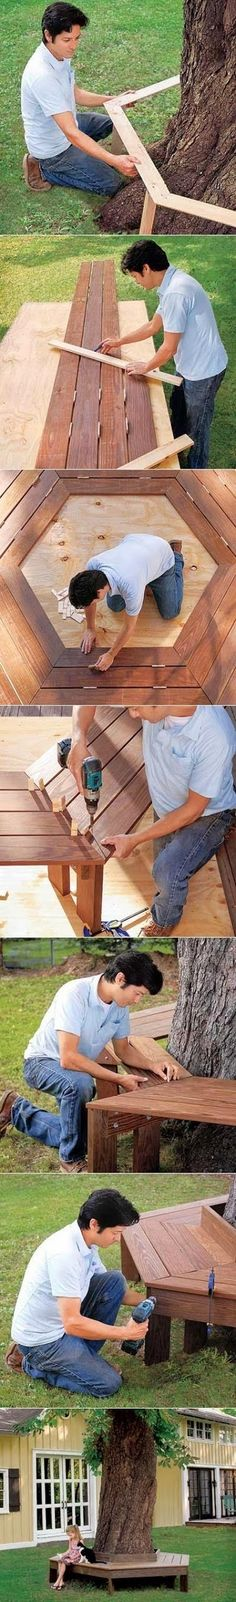 How to build a bench around a tree.. MATERIALS :  Compound miter saw or circular saw Drill/driver with a 3⁄8-inch spade bit and 3⁄32x3-inch bit Speed Square Clamps Adjustable wrench 4-foot level Garden spade 120-grit sandpaper